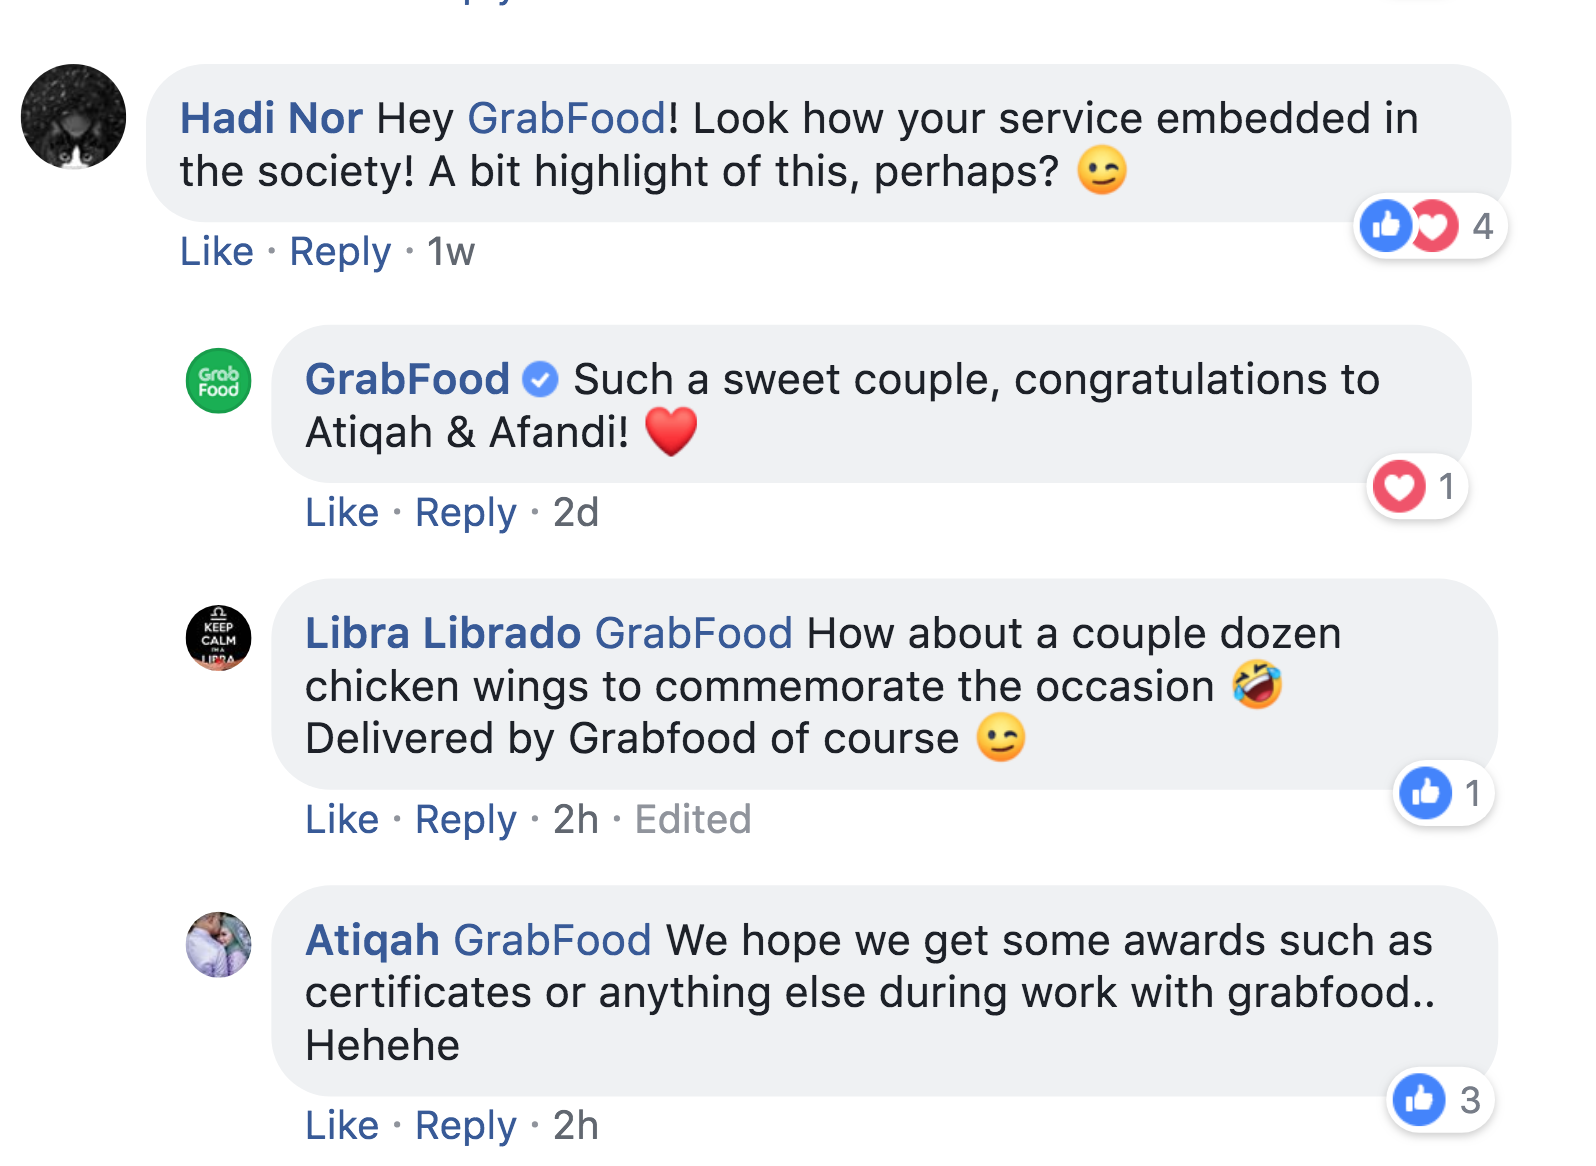 Image from Facebook GrabFood Malaysia